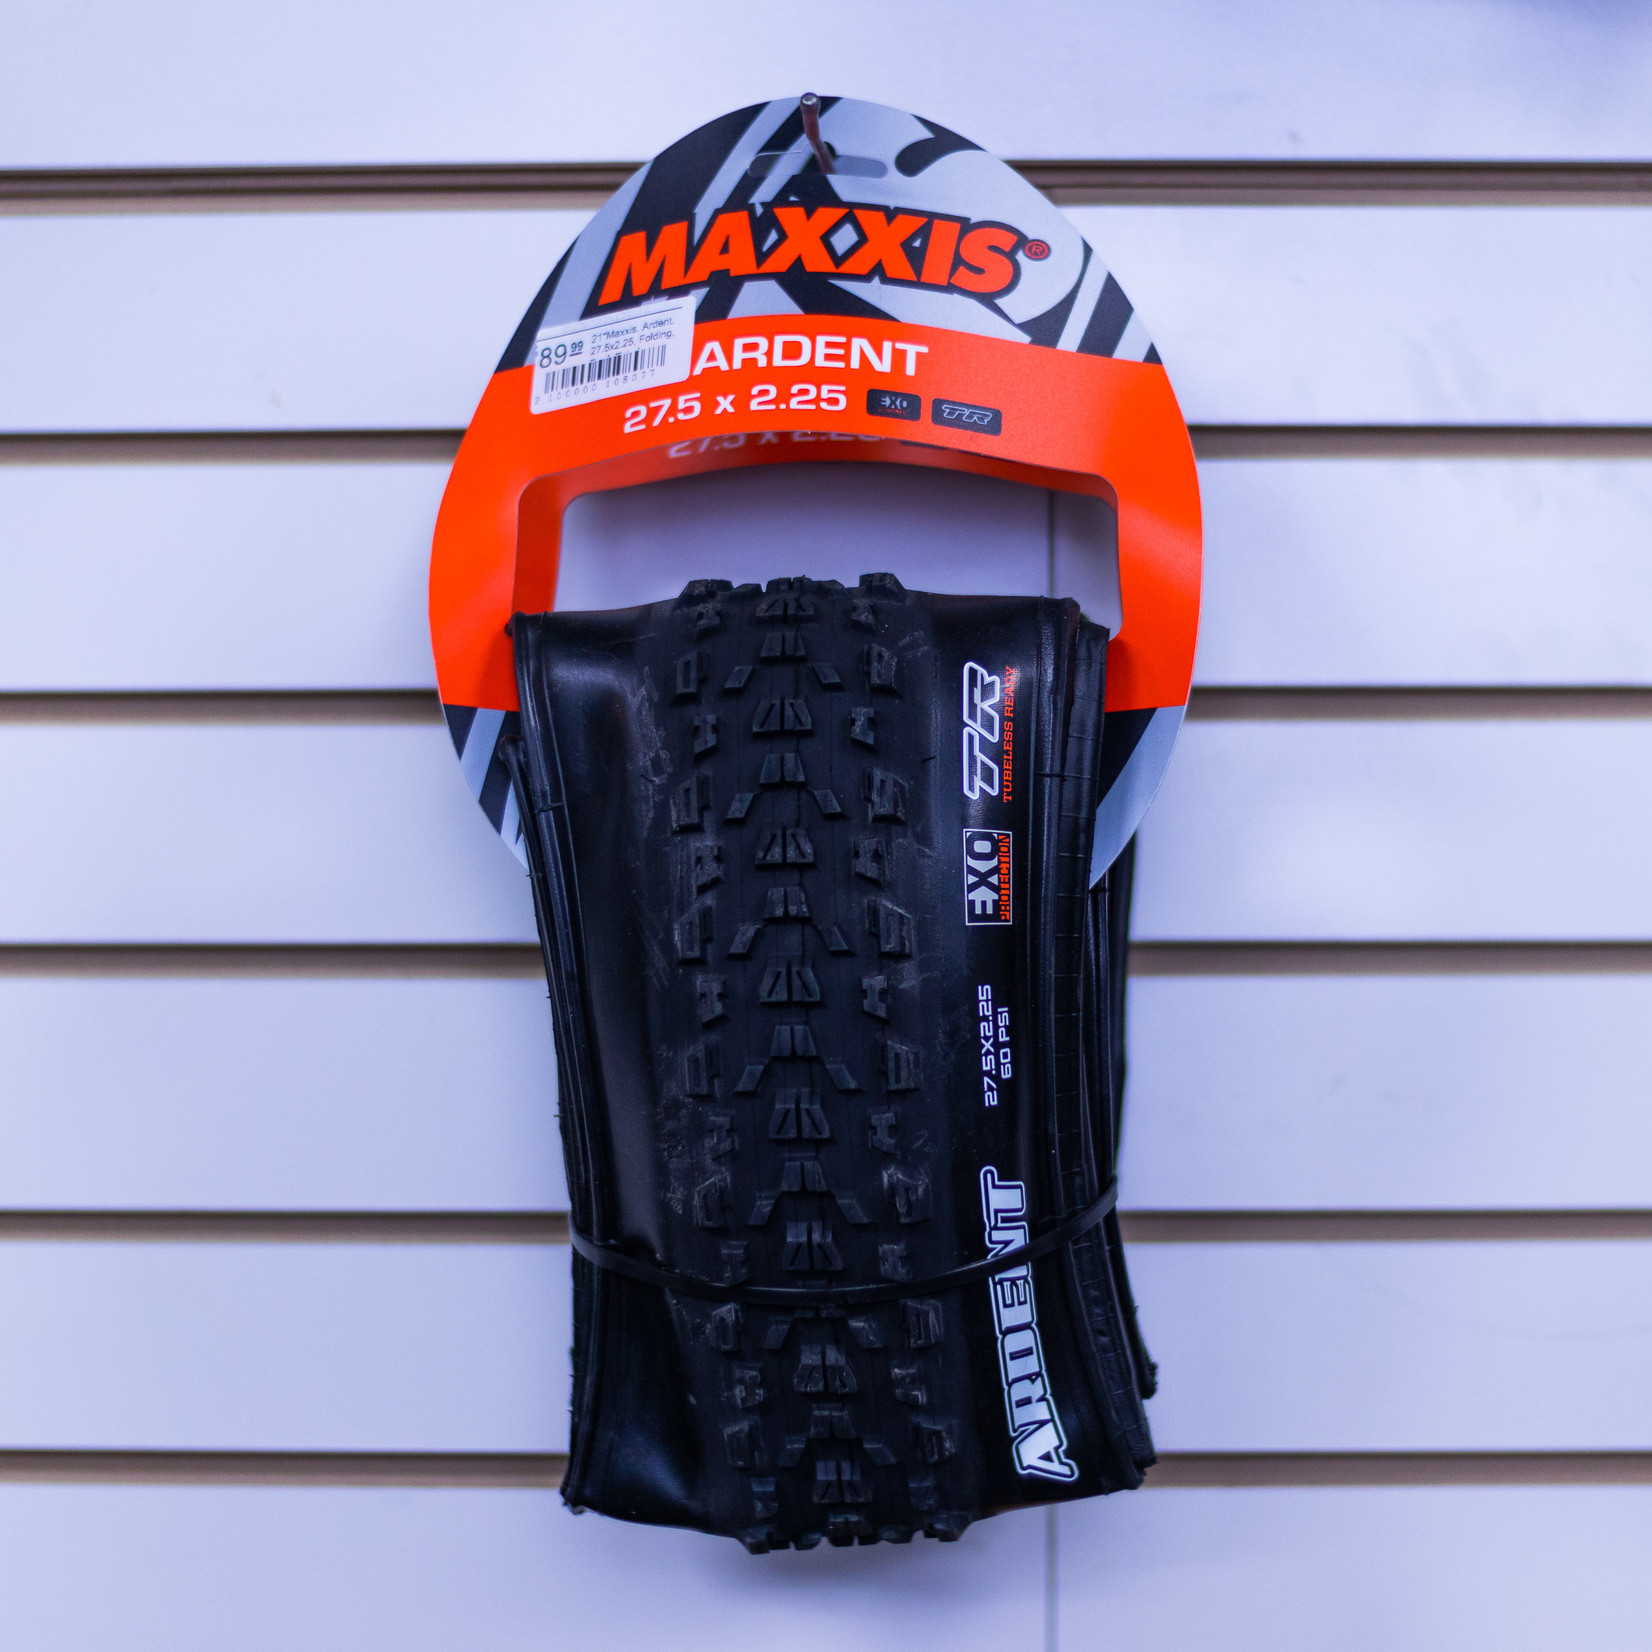 Maxxis Ardent 27.5 x 2.25